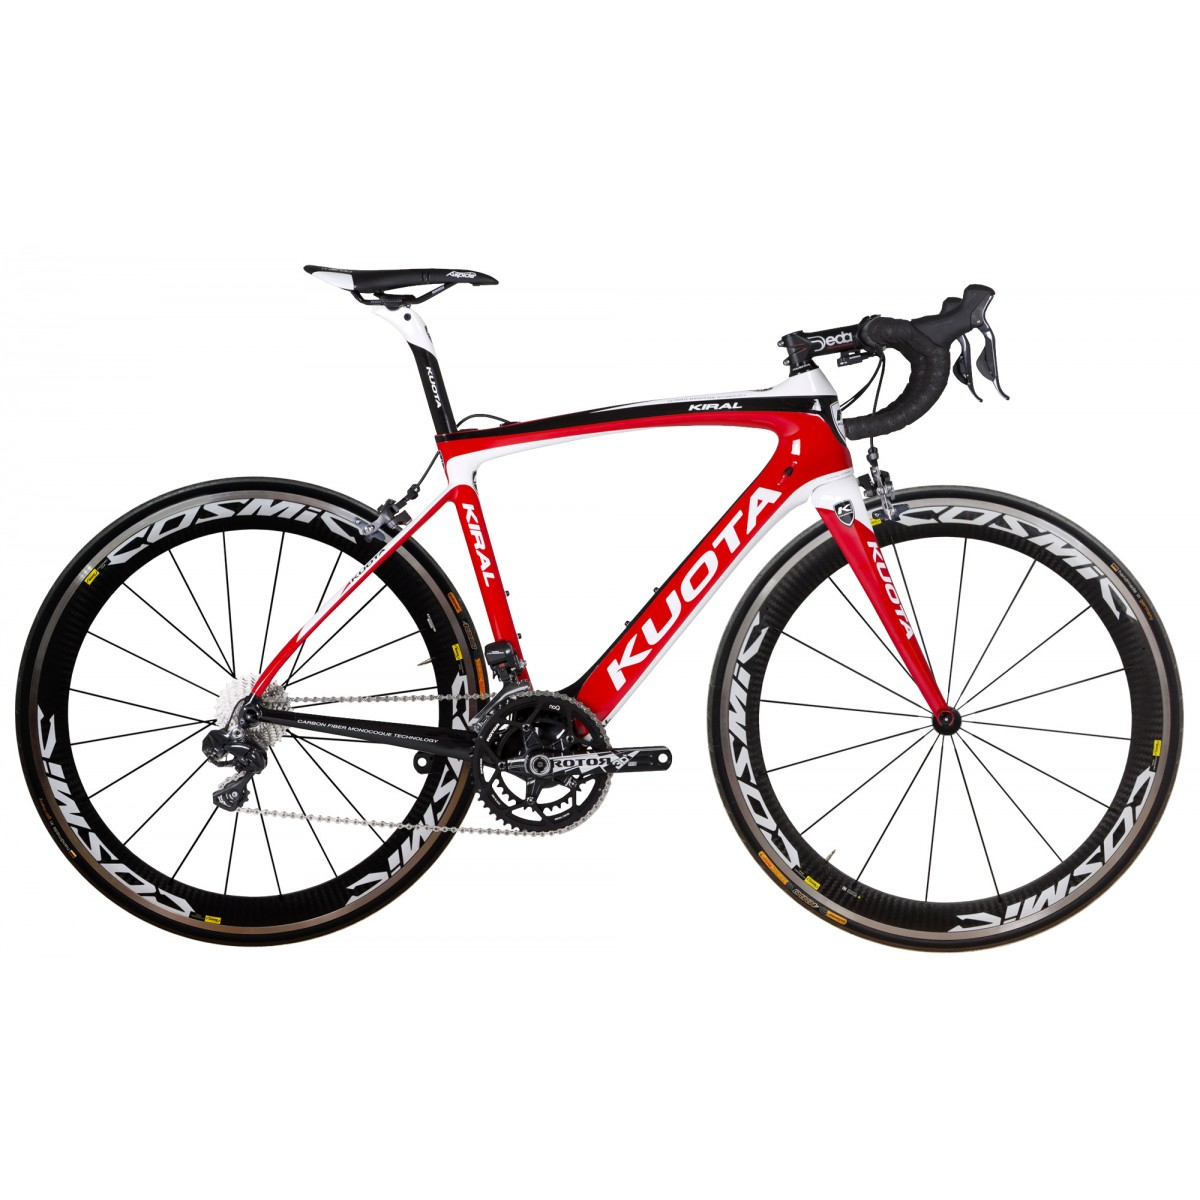 Home KUOTA KIRAL RED 2017